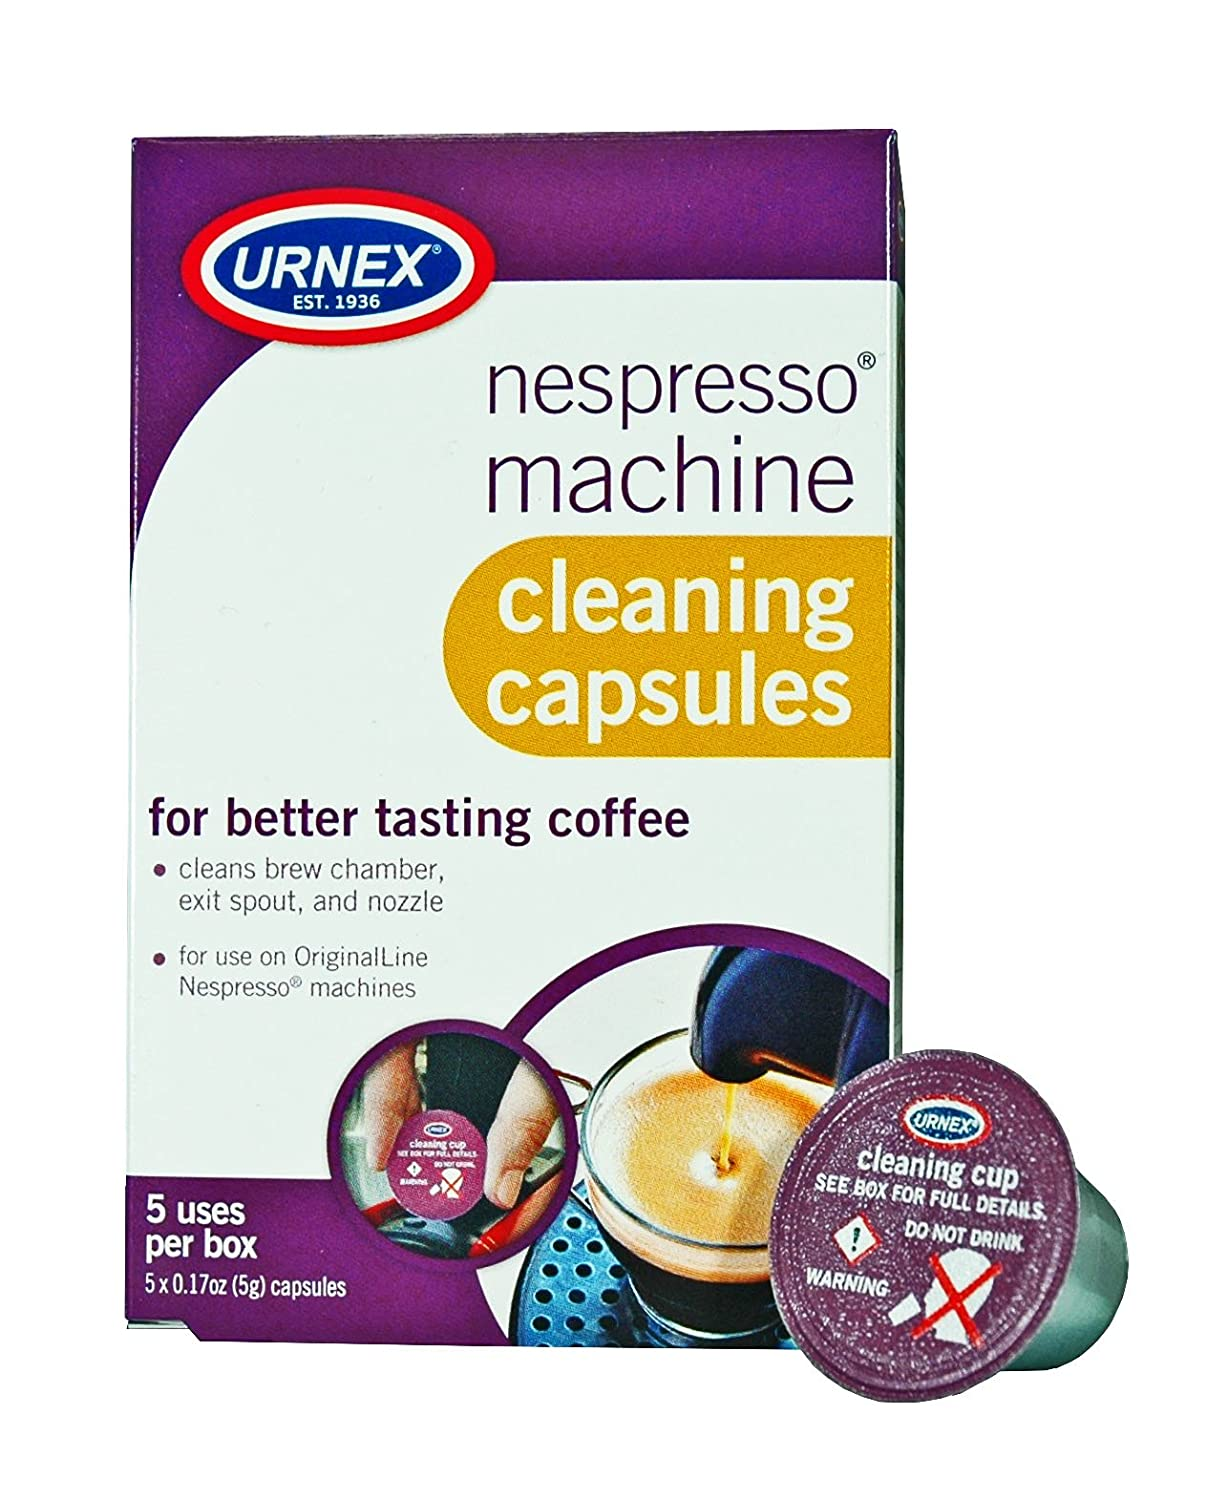 Urnex Nespresso Machine Descaling & Cleaning Kit 25-CCP-UX-N05